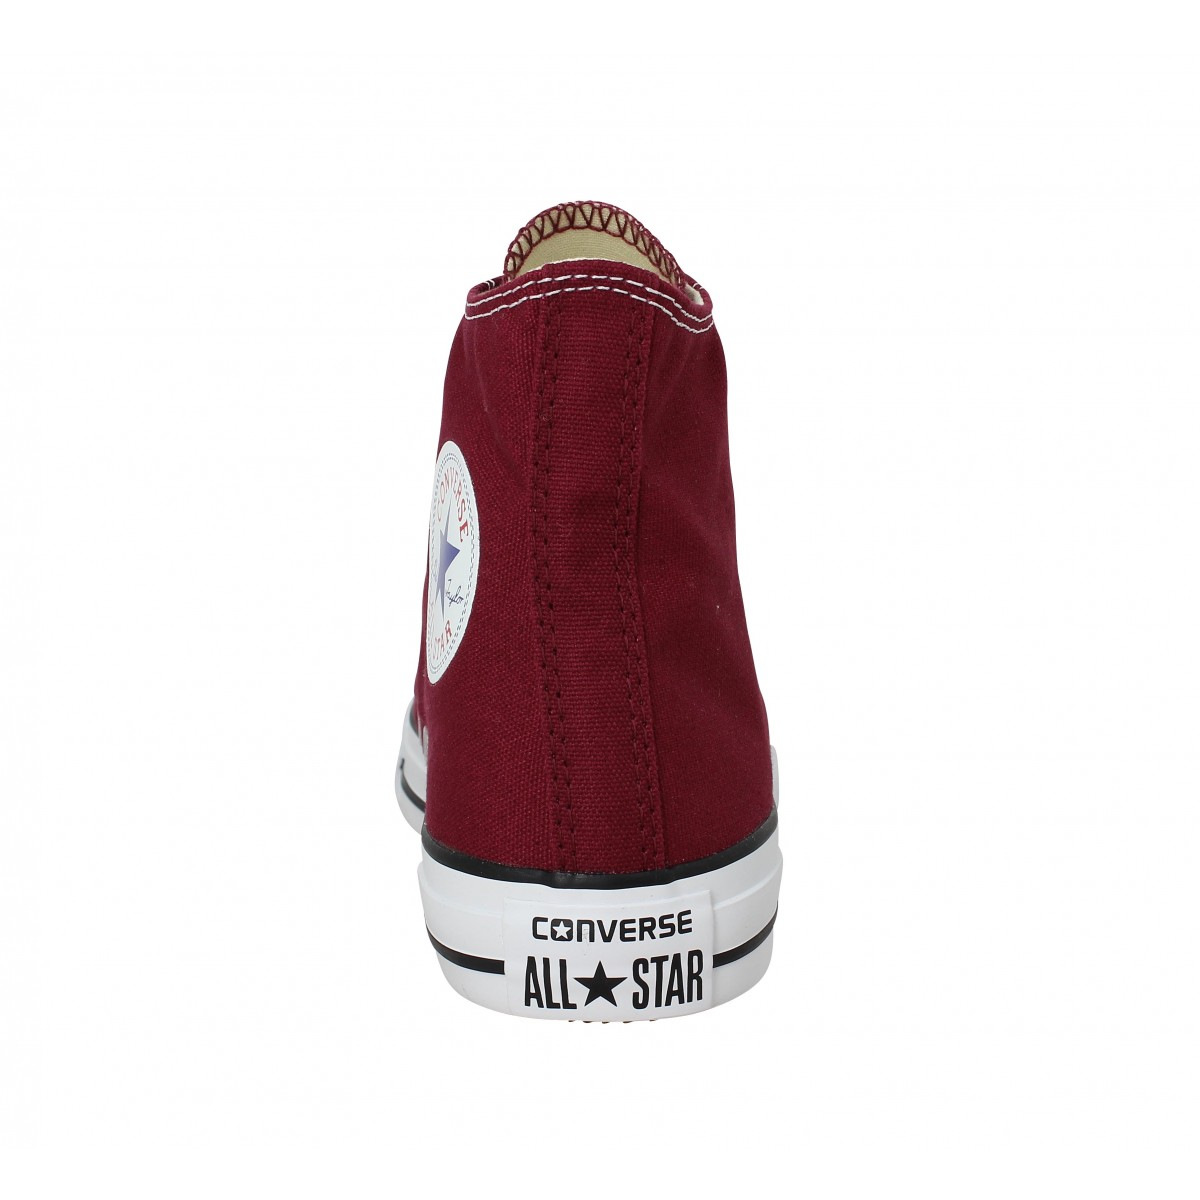 converse all star rouge bordeaux